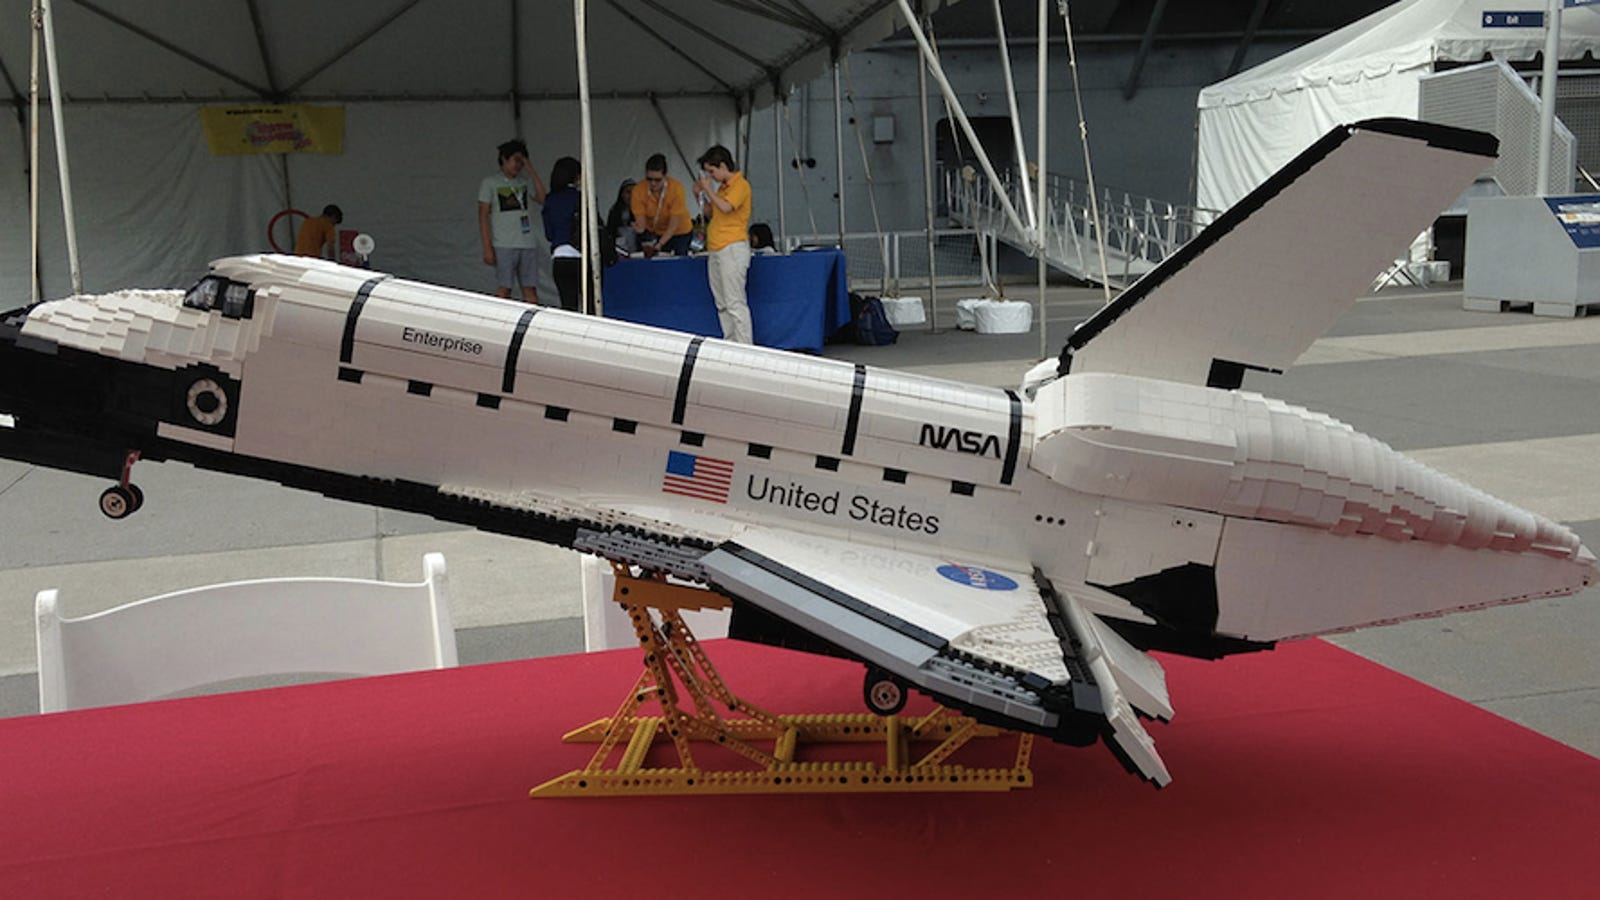 lego space shuttle bauplan - photo #14